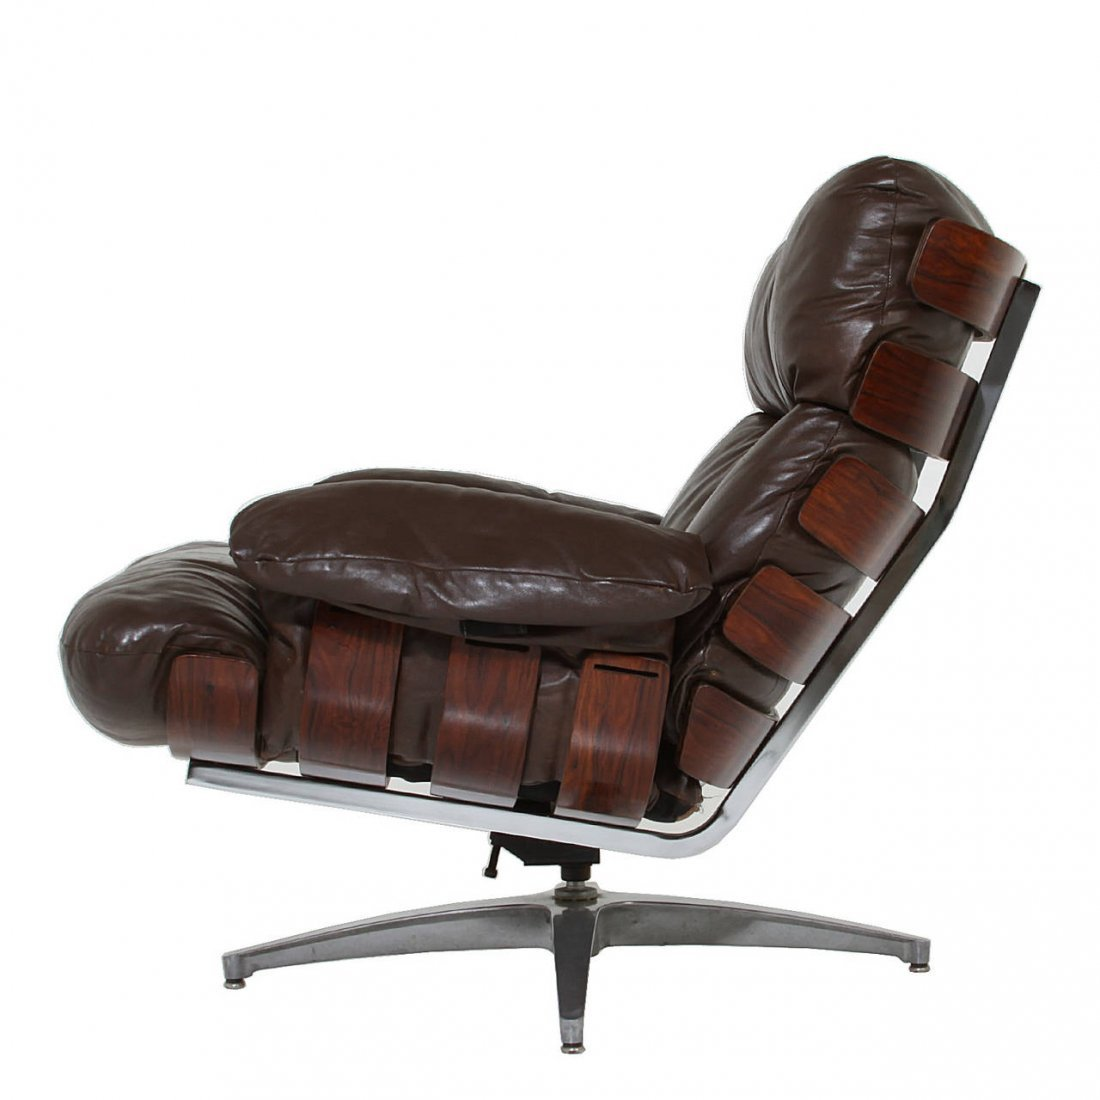 Directional rosewood and leather swivel chair - 3